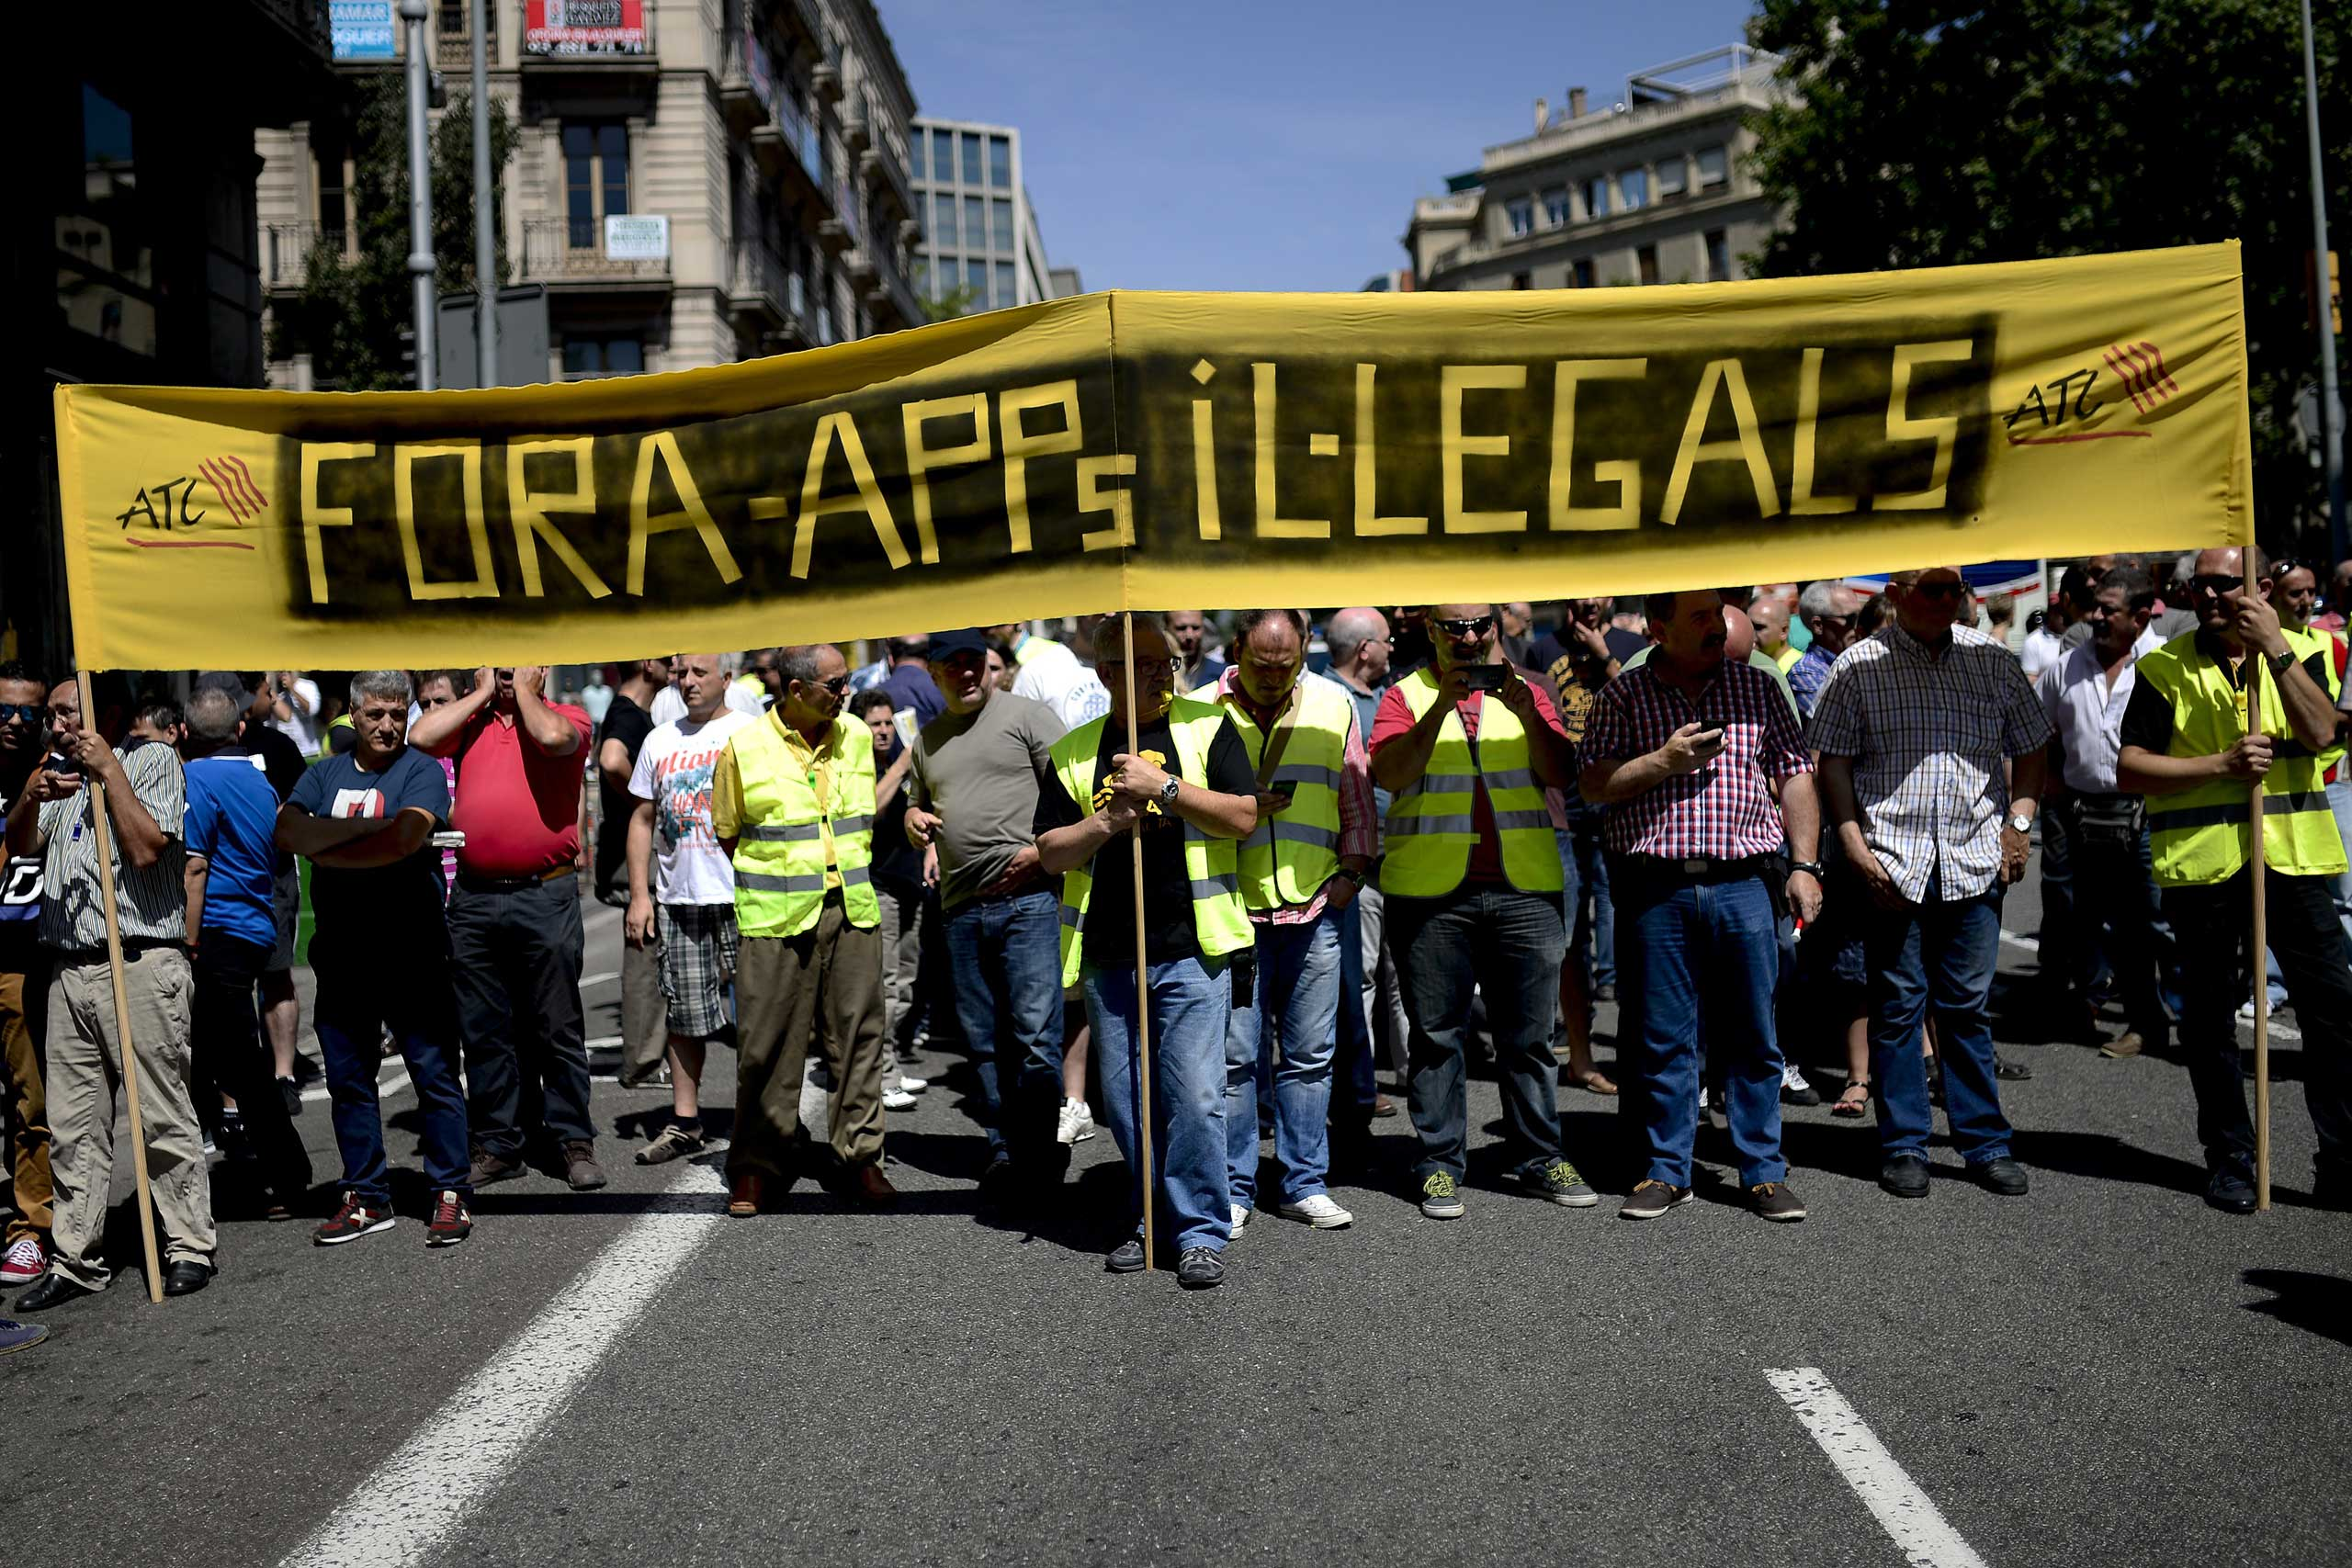 Taxi drivers hold a banner during a protest in Barcelona on June 11, 2014.